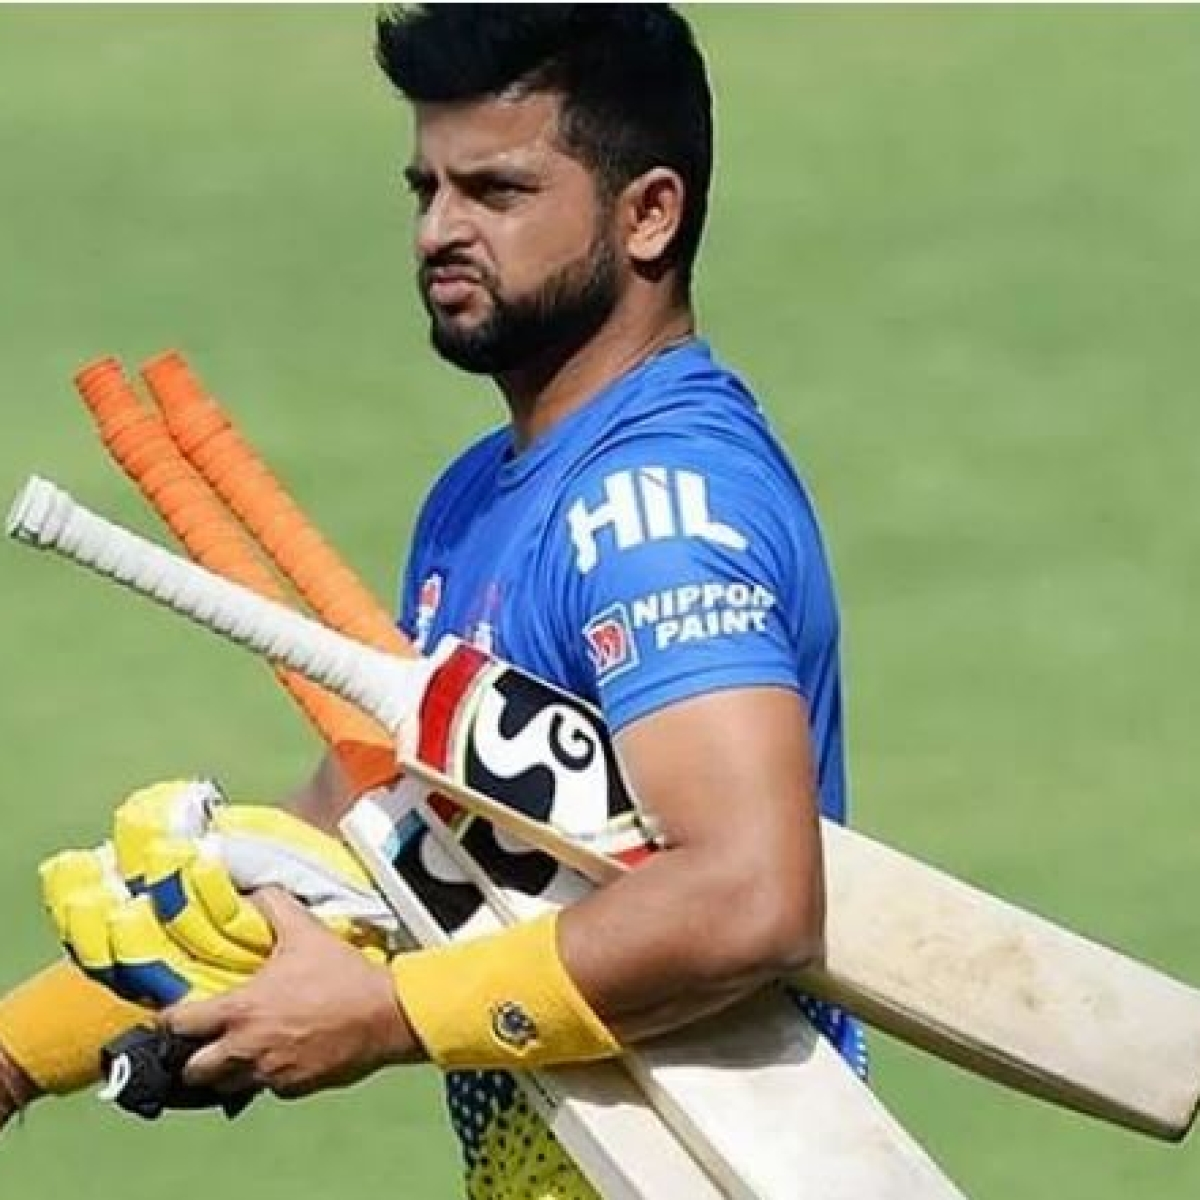 FPJ Fast Facts: From balcony claims to uncle's attack - what we know about Raina quitting IPL